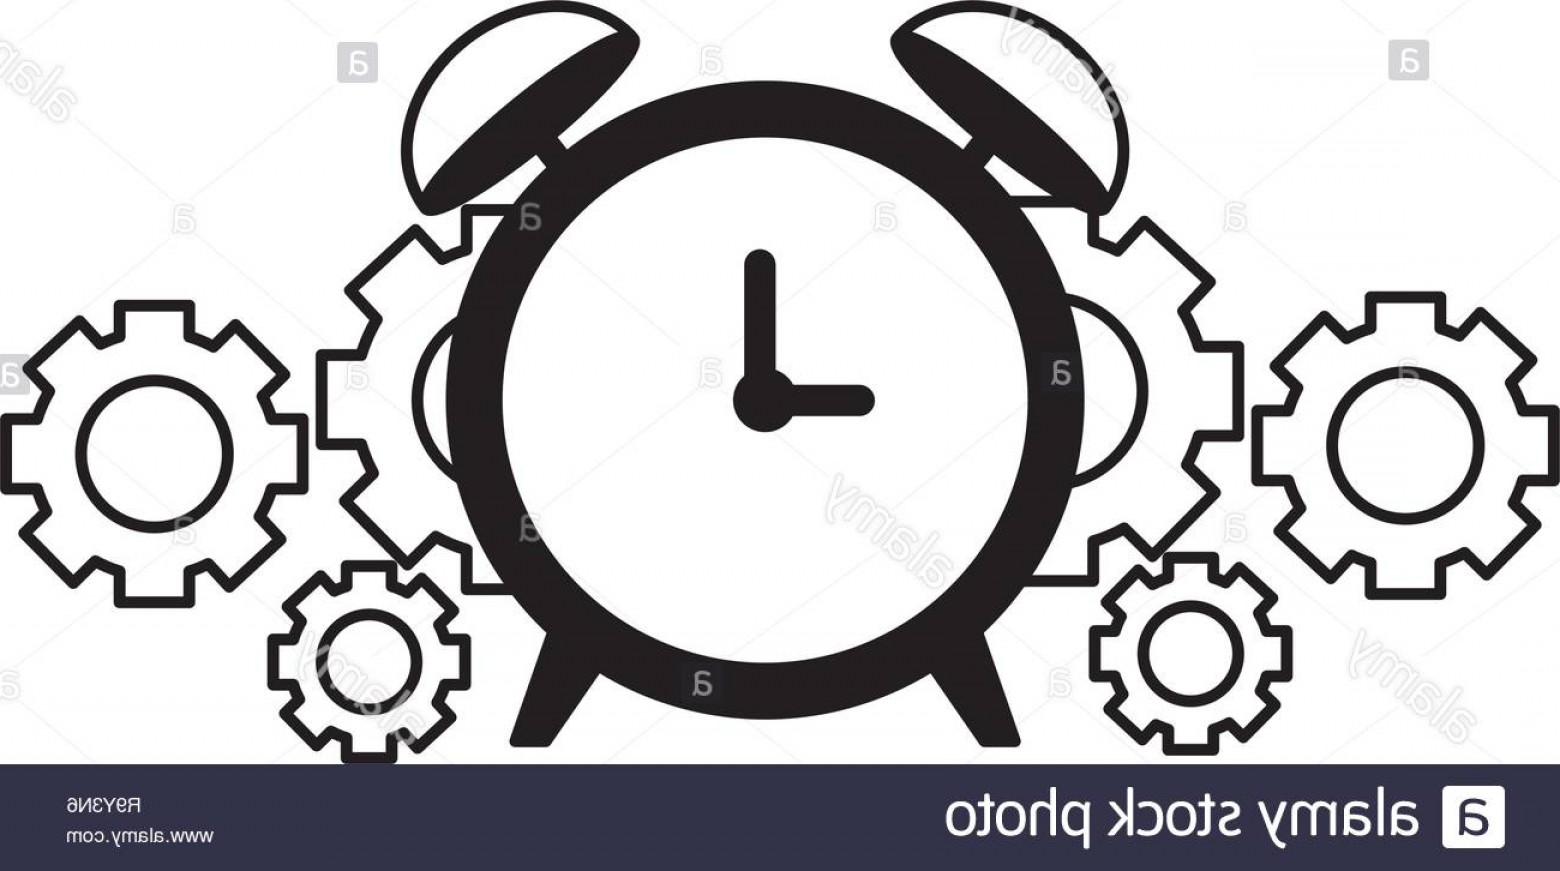 Watch Gears Vector: Business Alarm Clock And Gears Image